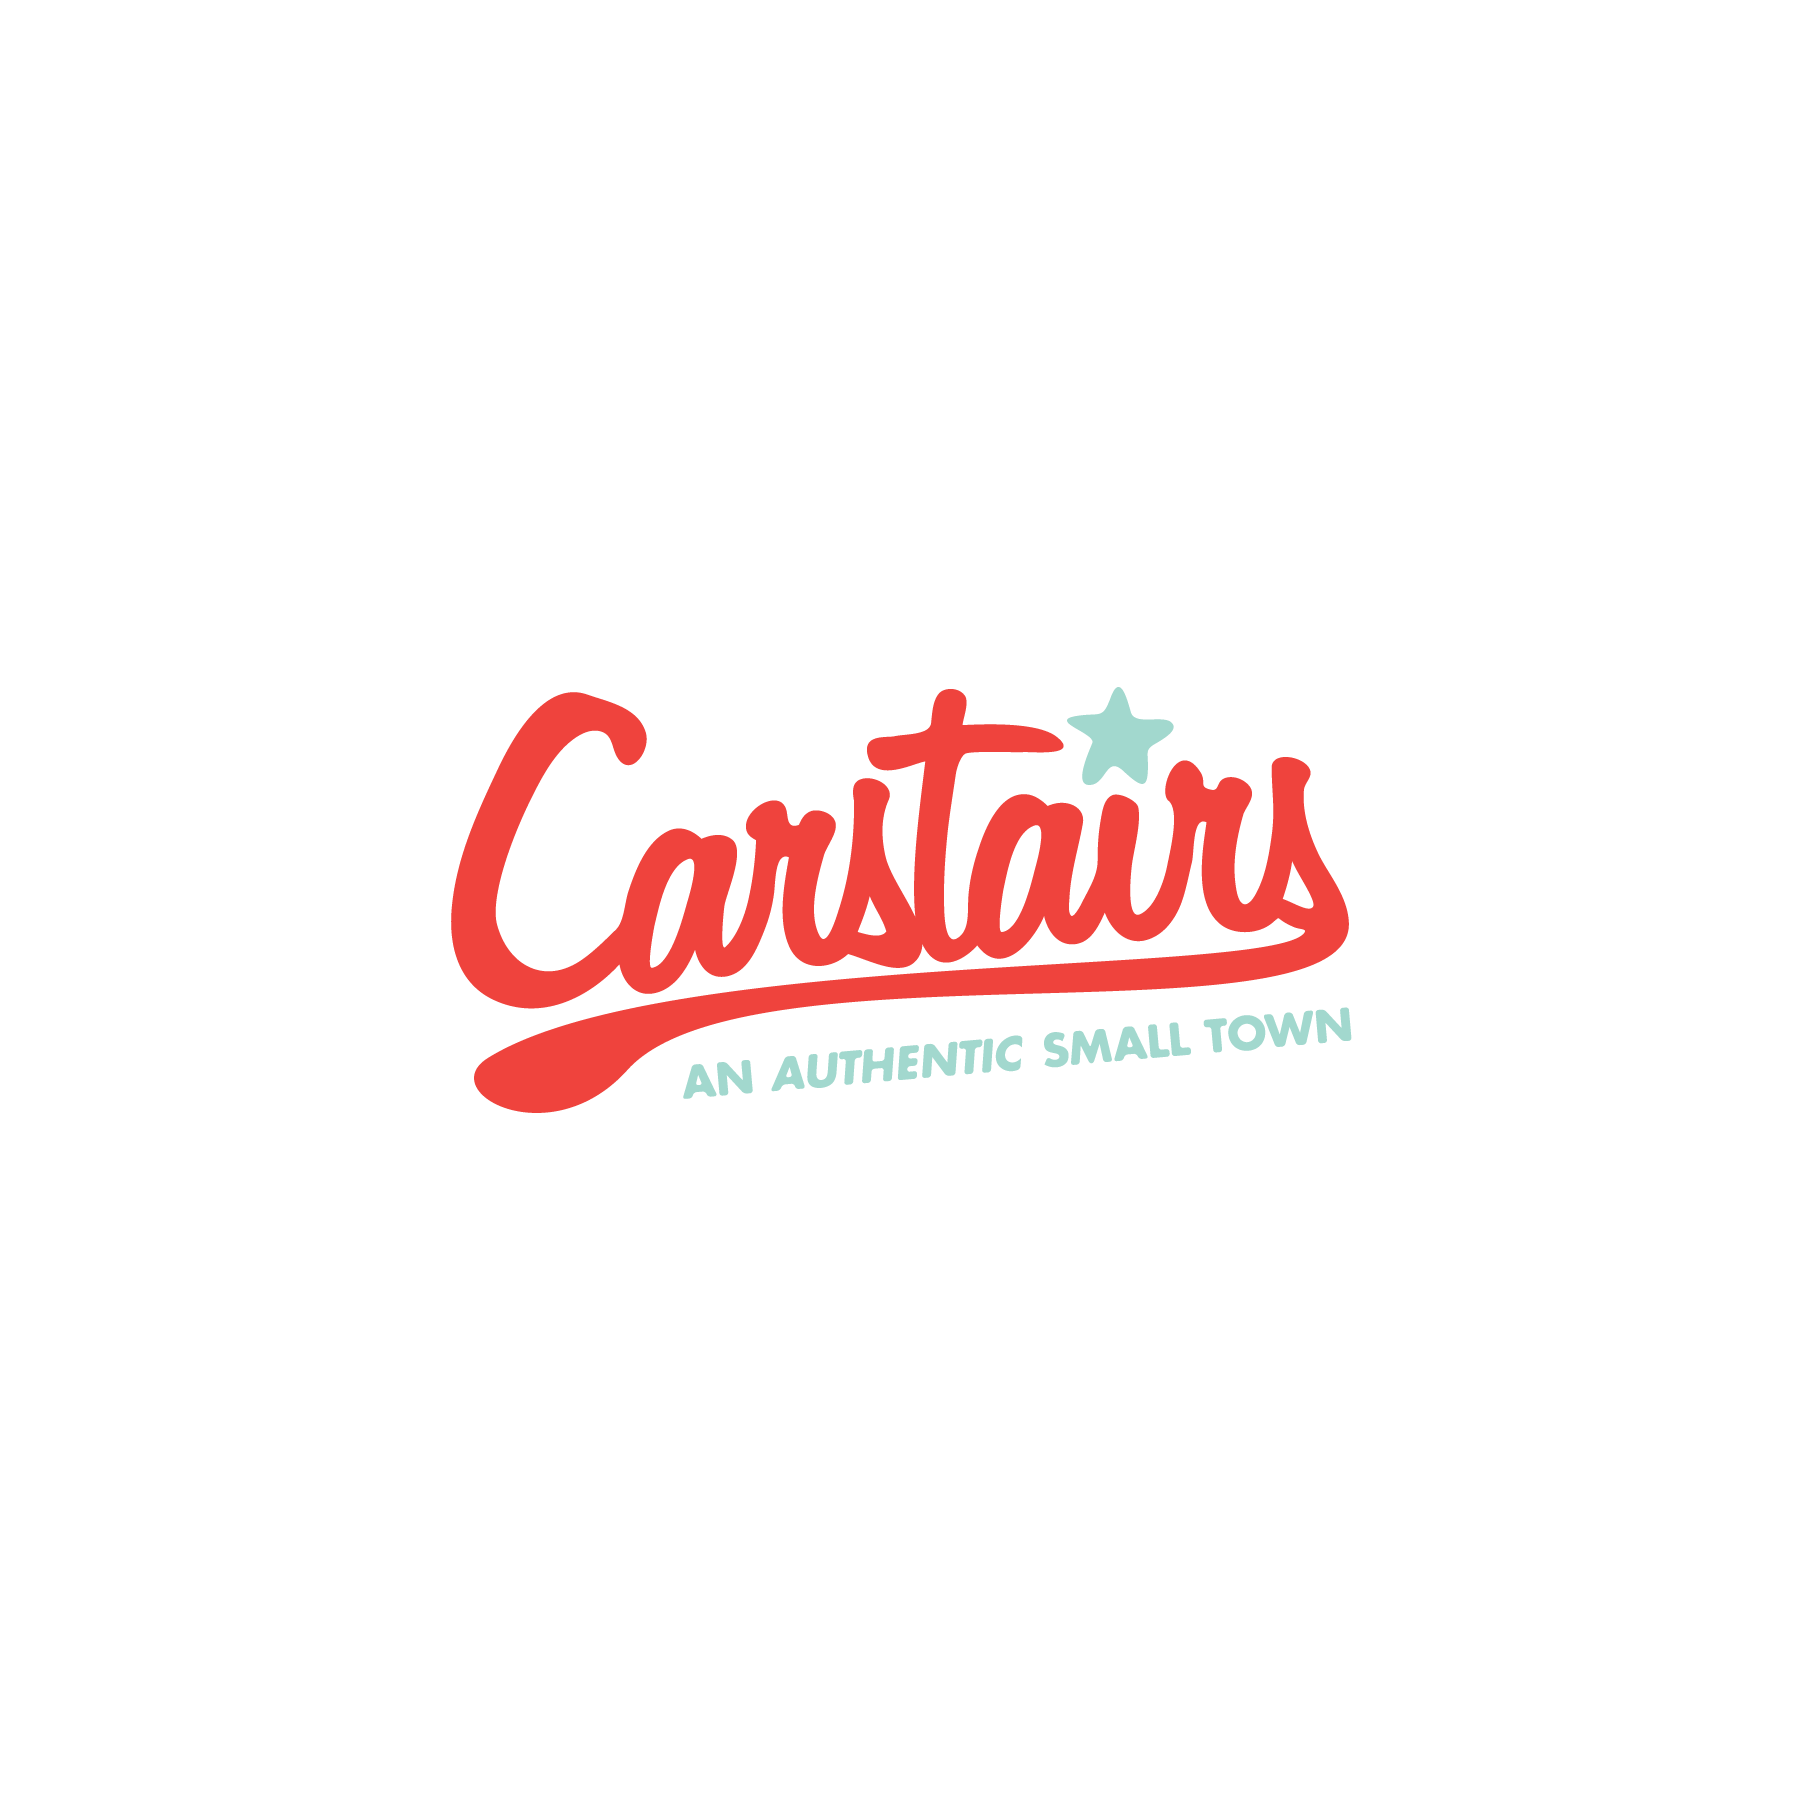 Town of Carstairs